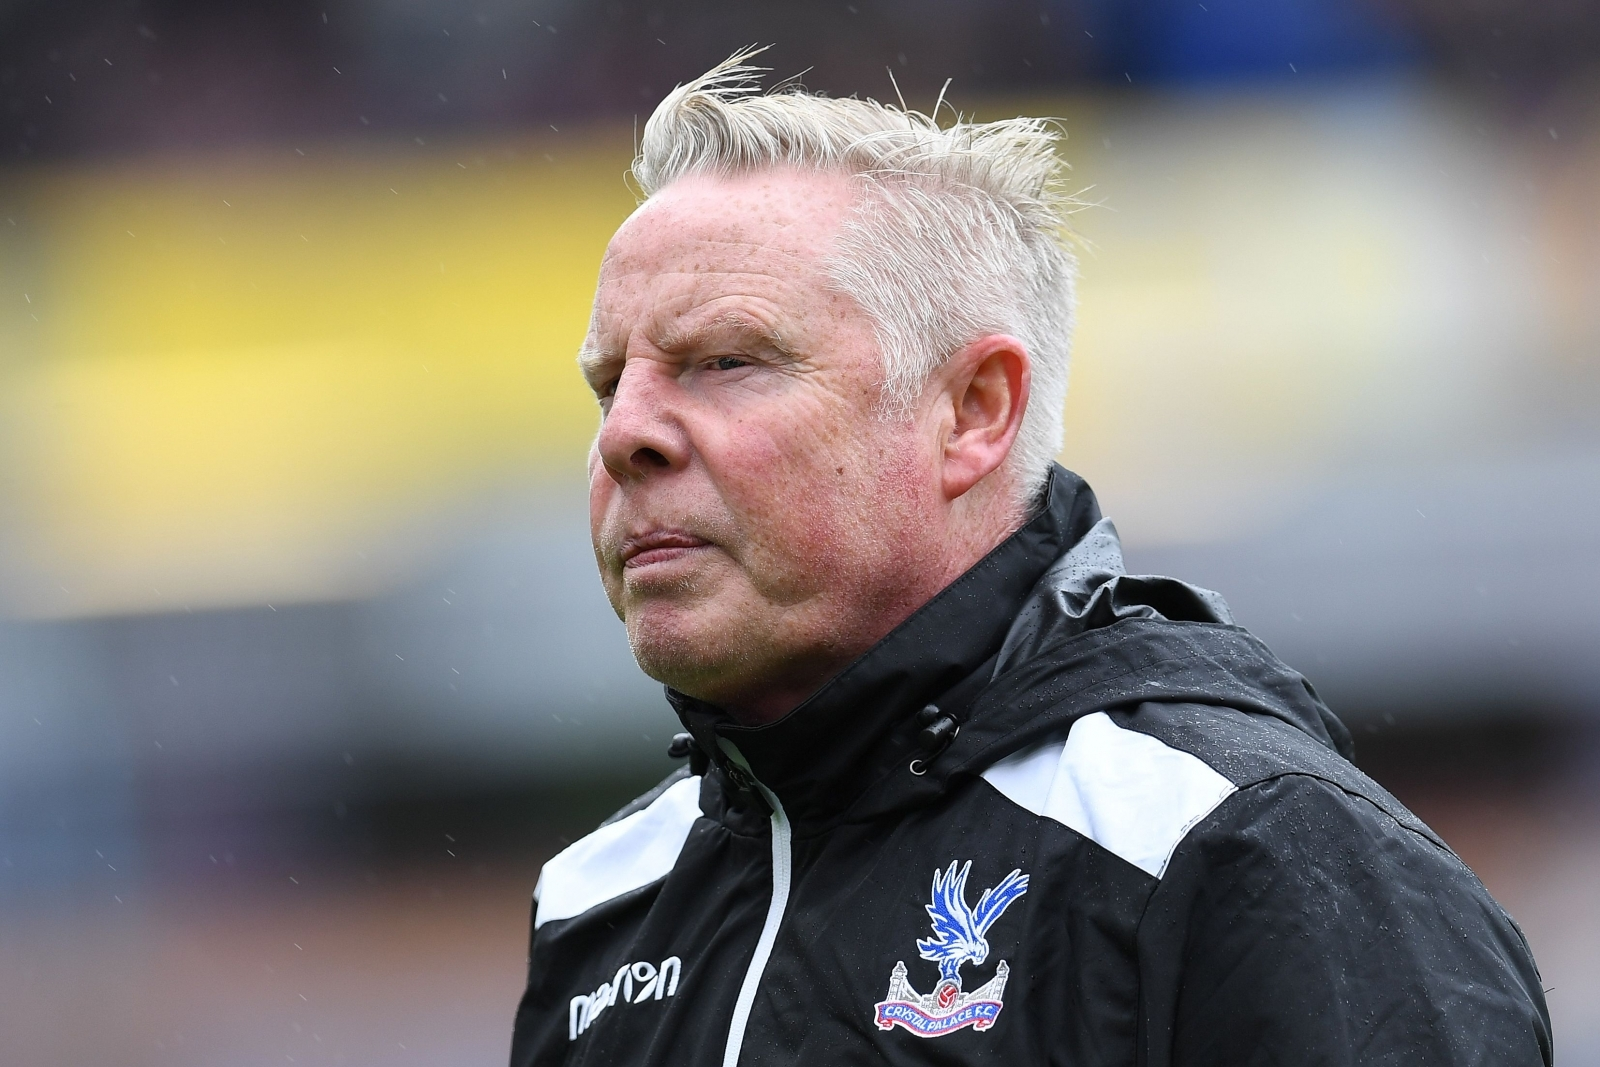 Crystal Palace 19/10 to win against Southampton in Saturday's Premier League clash